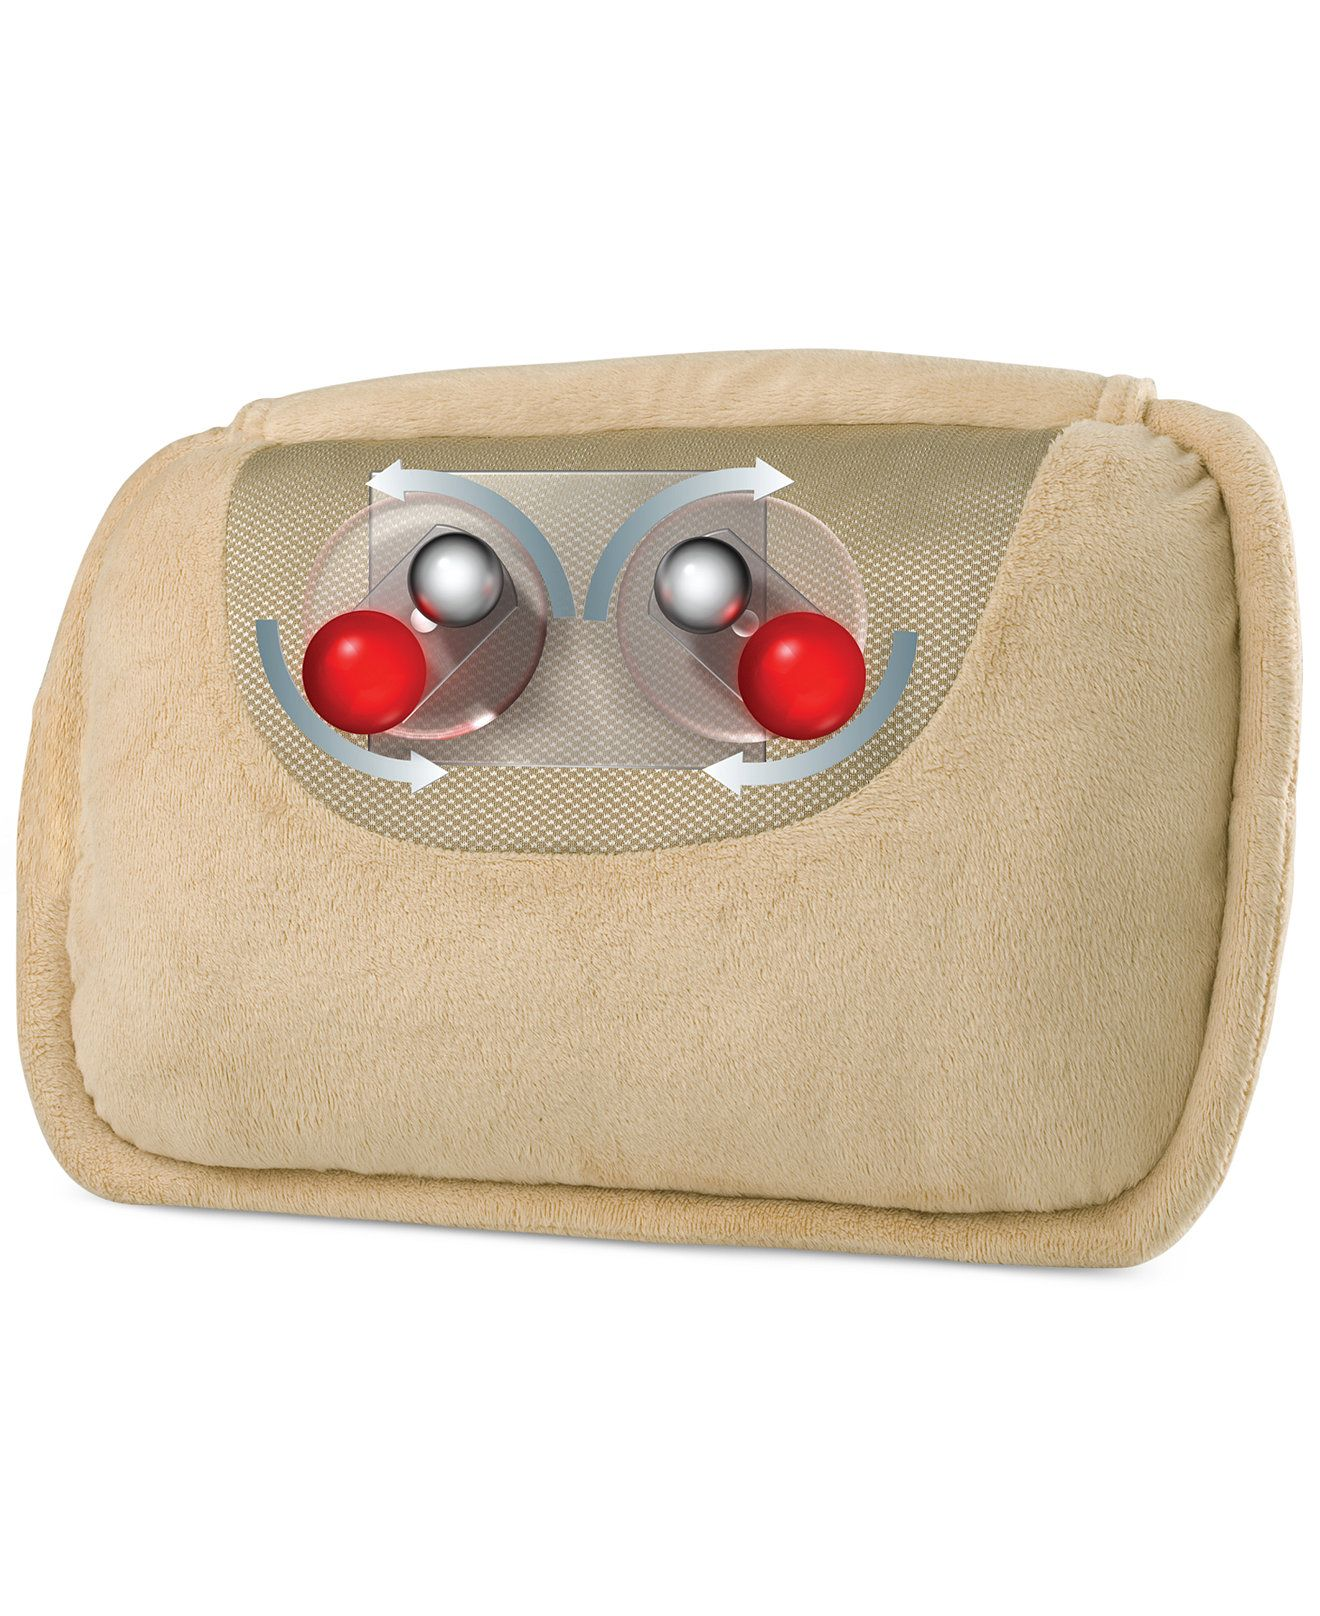 HoMedics Shiatsu Massage Pillow Cushion